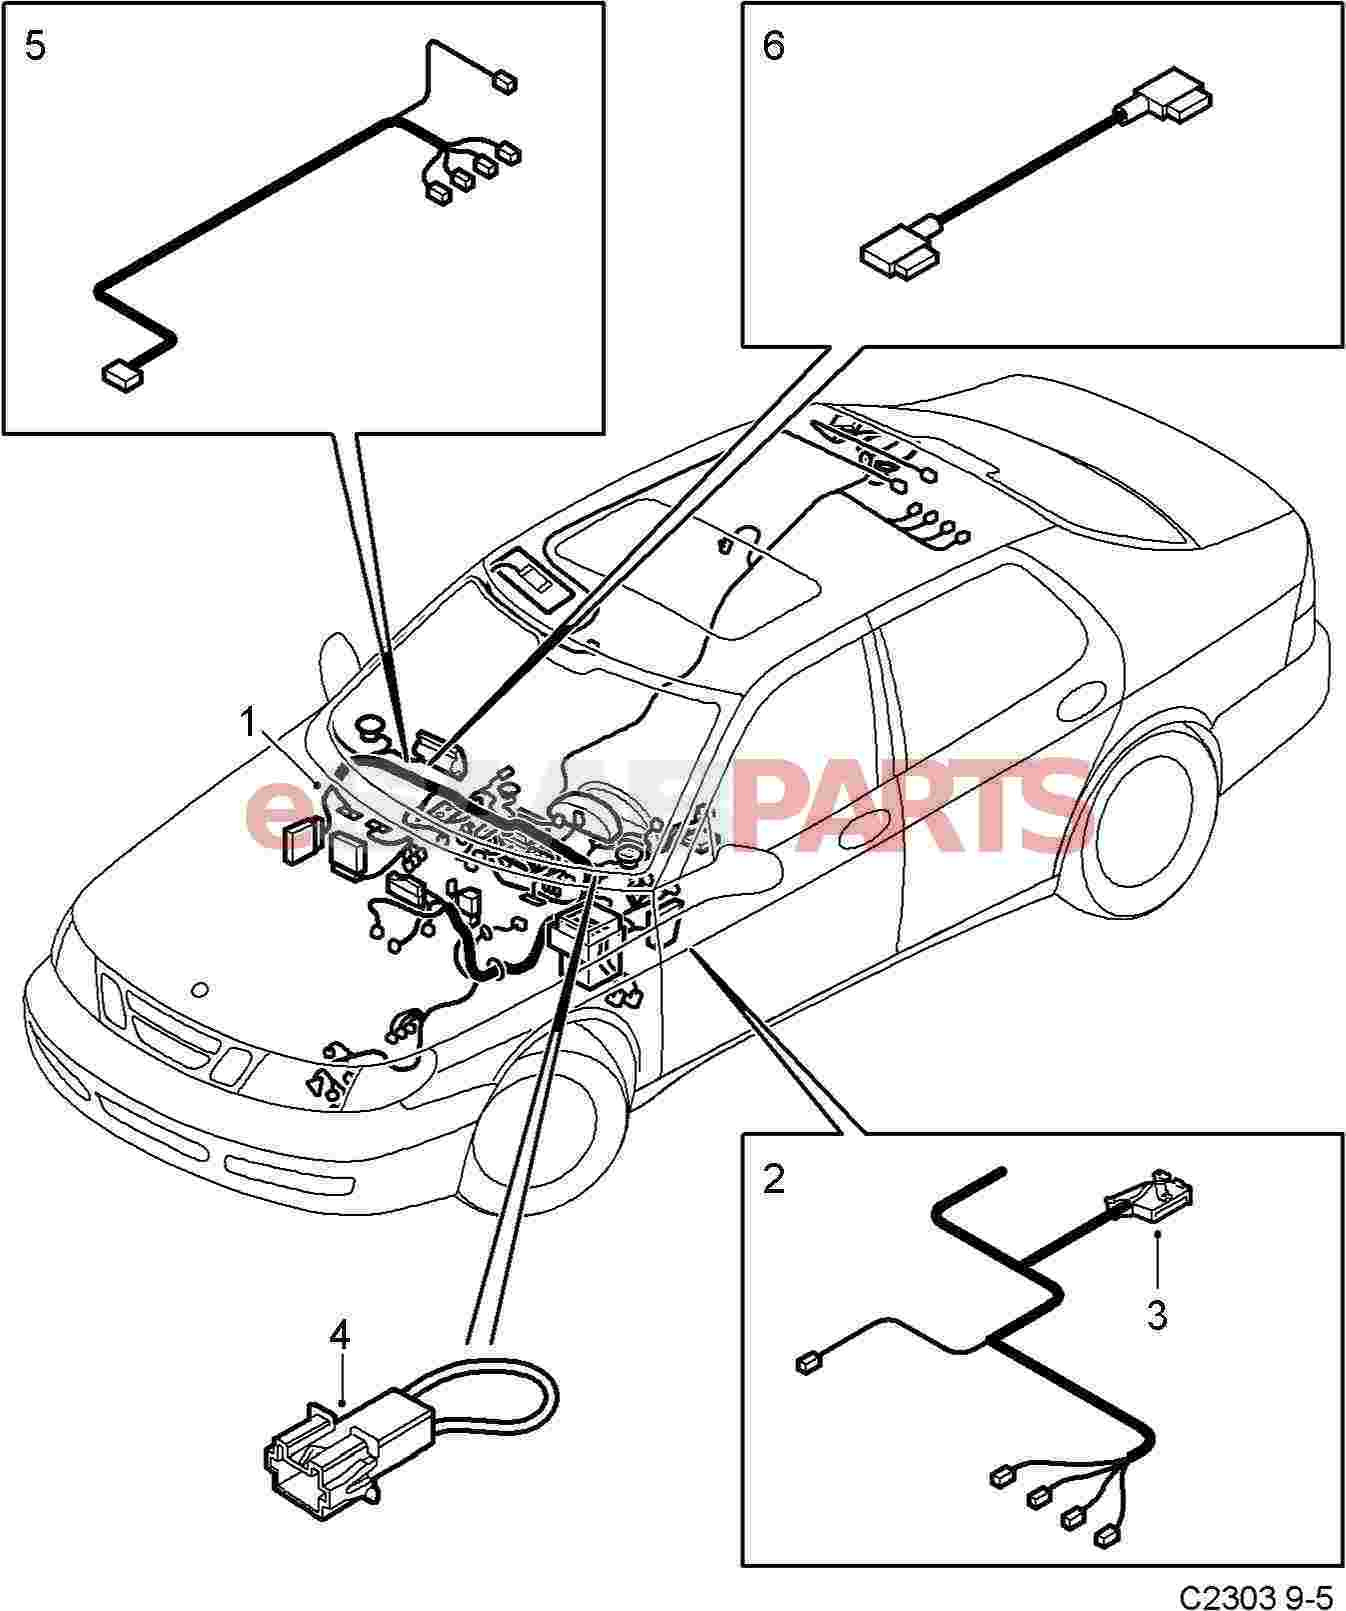 2006 bmw x5 fuse box auto electrical wiring diagram 2003 BMW X5 Fuse Box related with 2006 bmw x5 fuse box